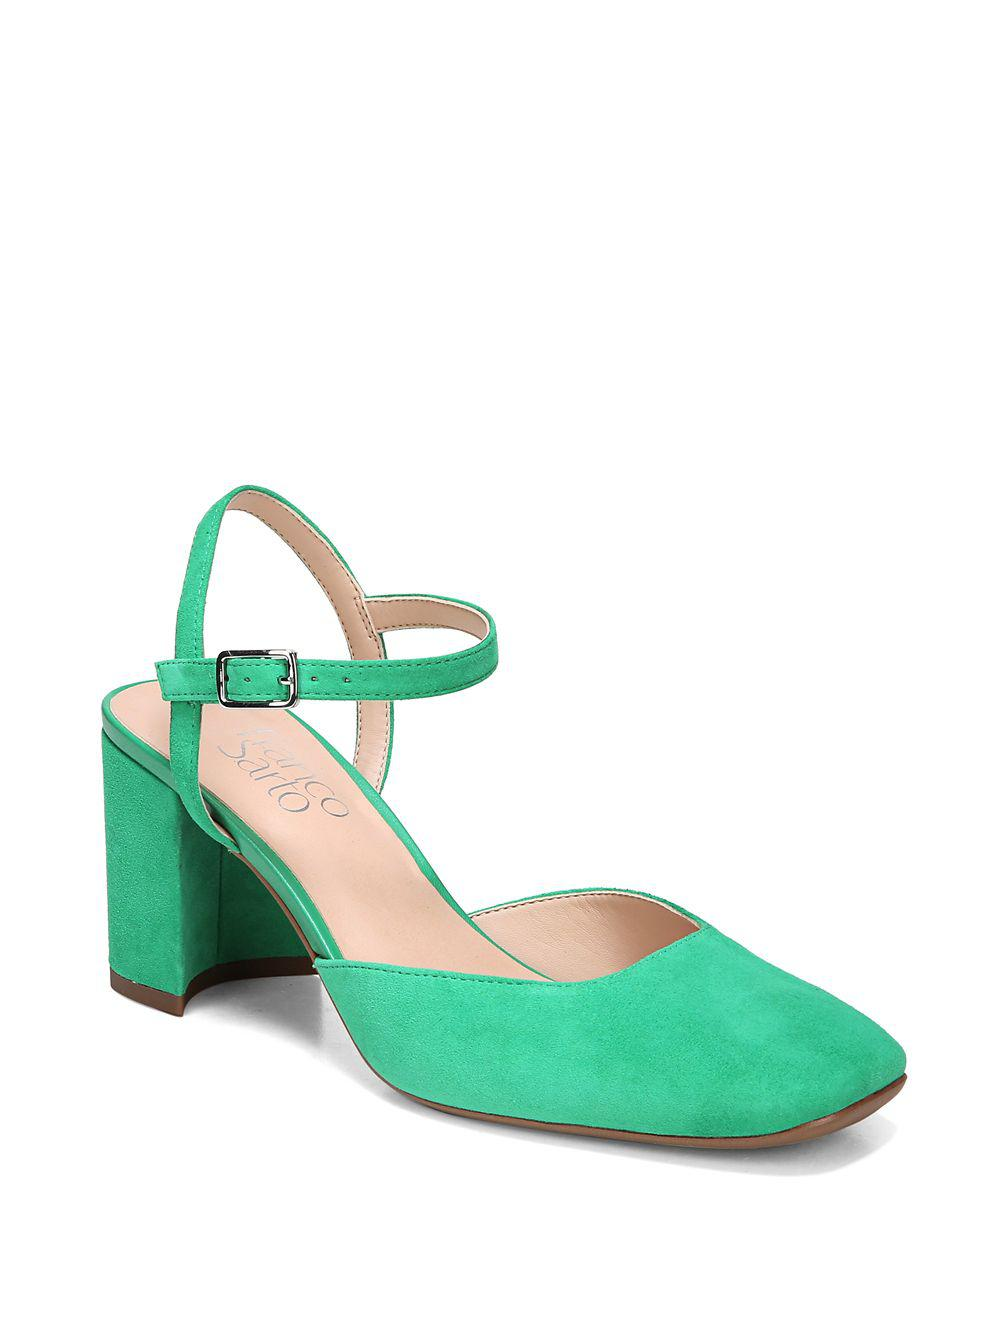 d1d9b414874a Lyst - Franco Sarto Lavita Suede Ankle-strap Pumps in Green